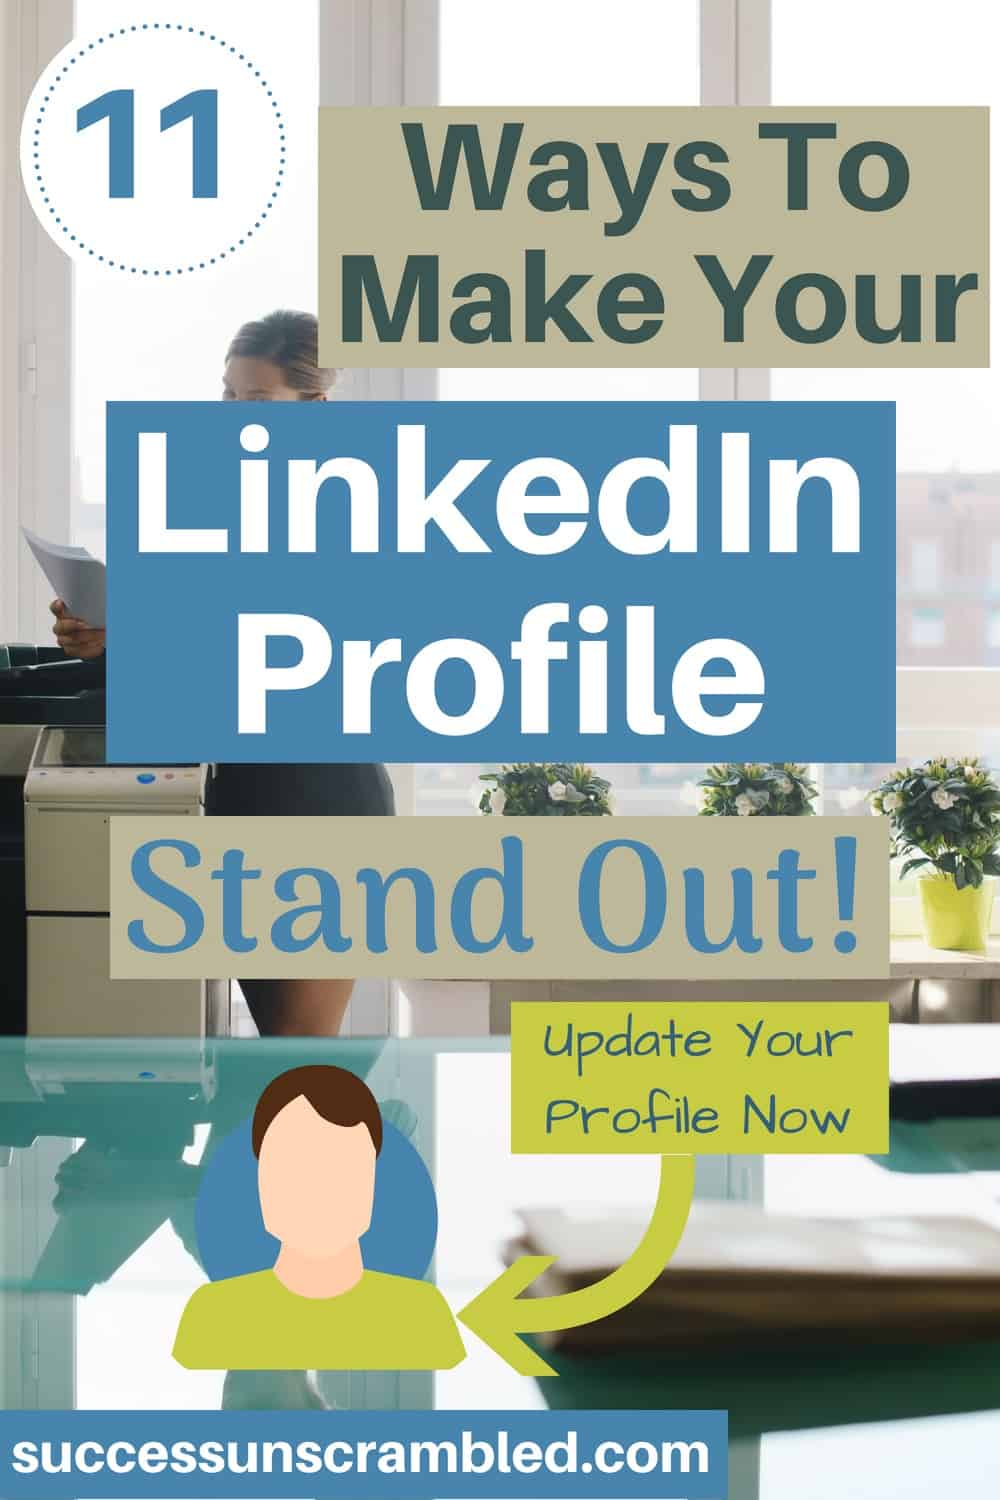 11 Ways To Make Your LinkedIn Profile Stand Out